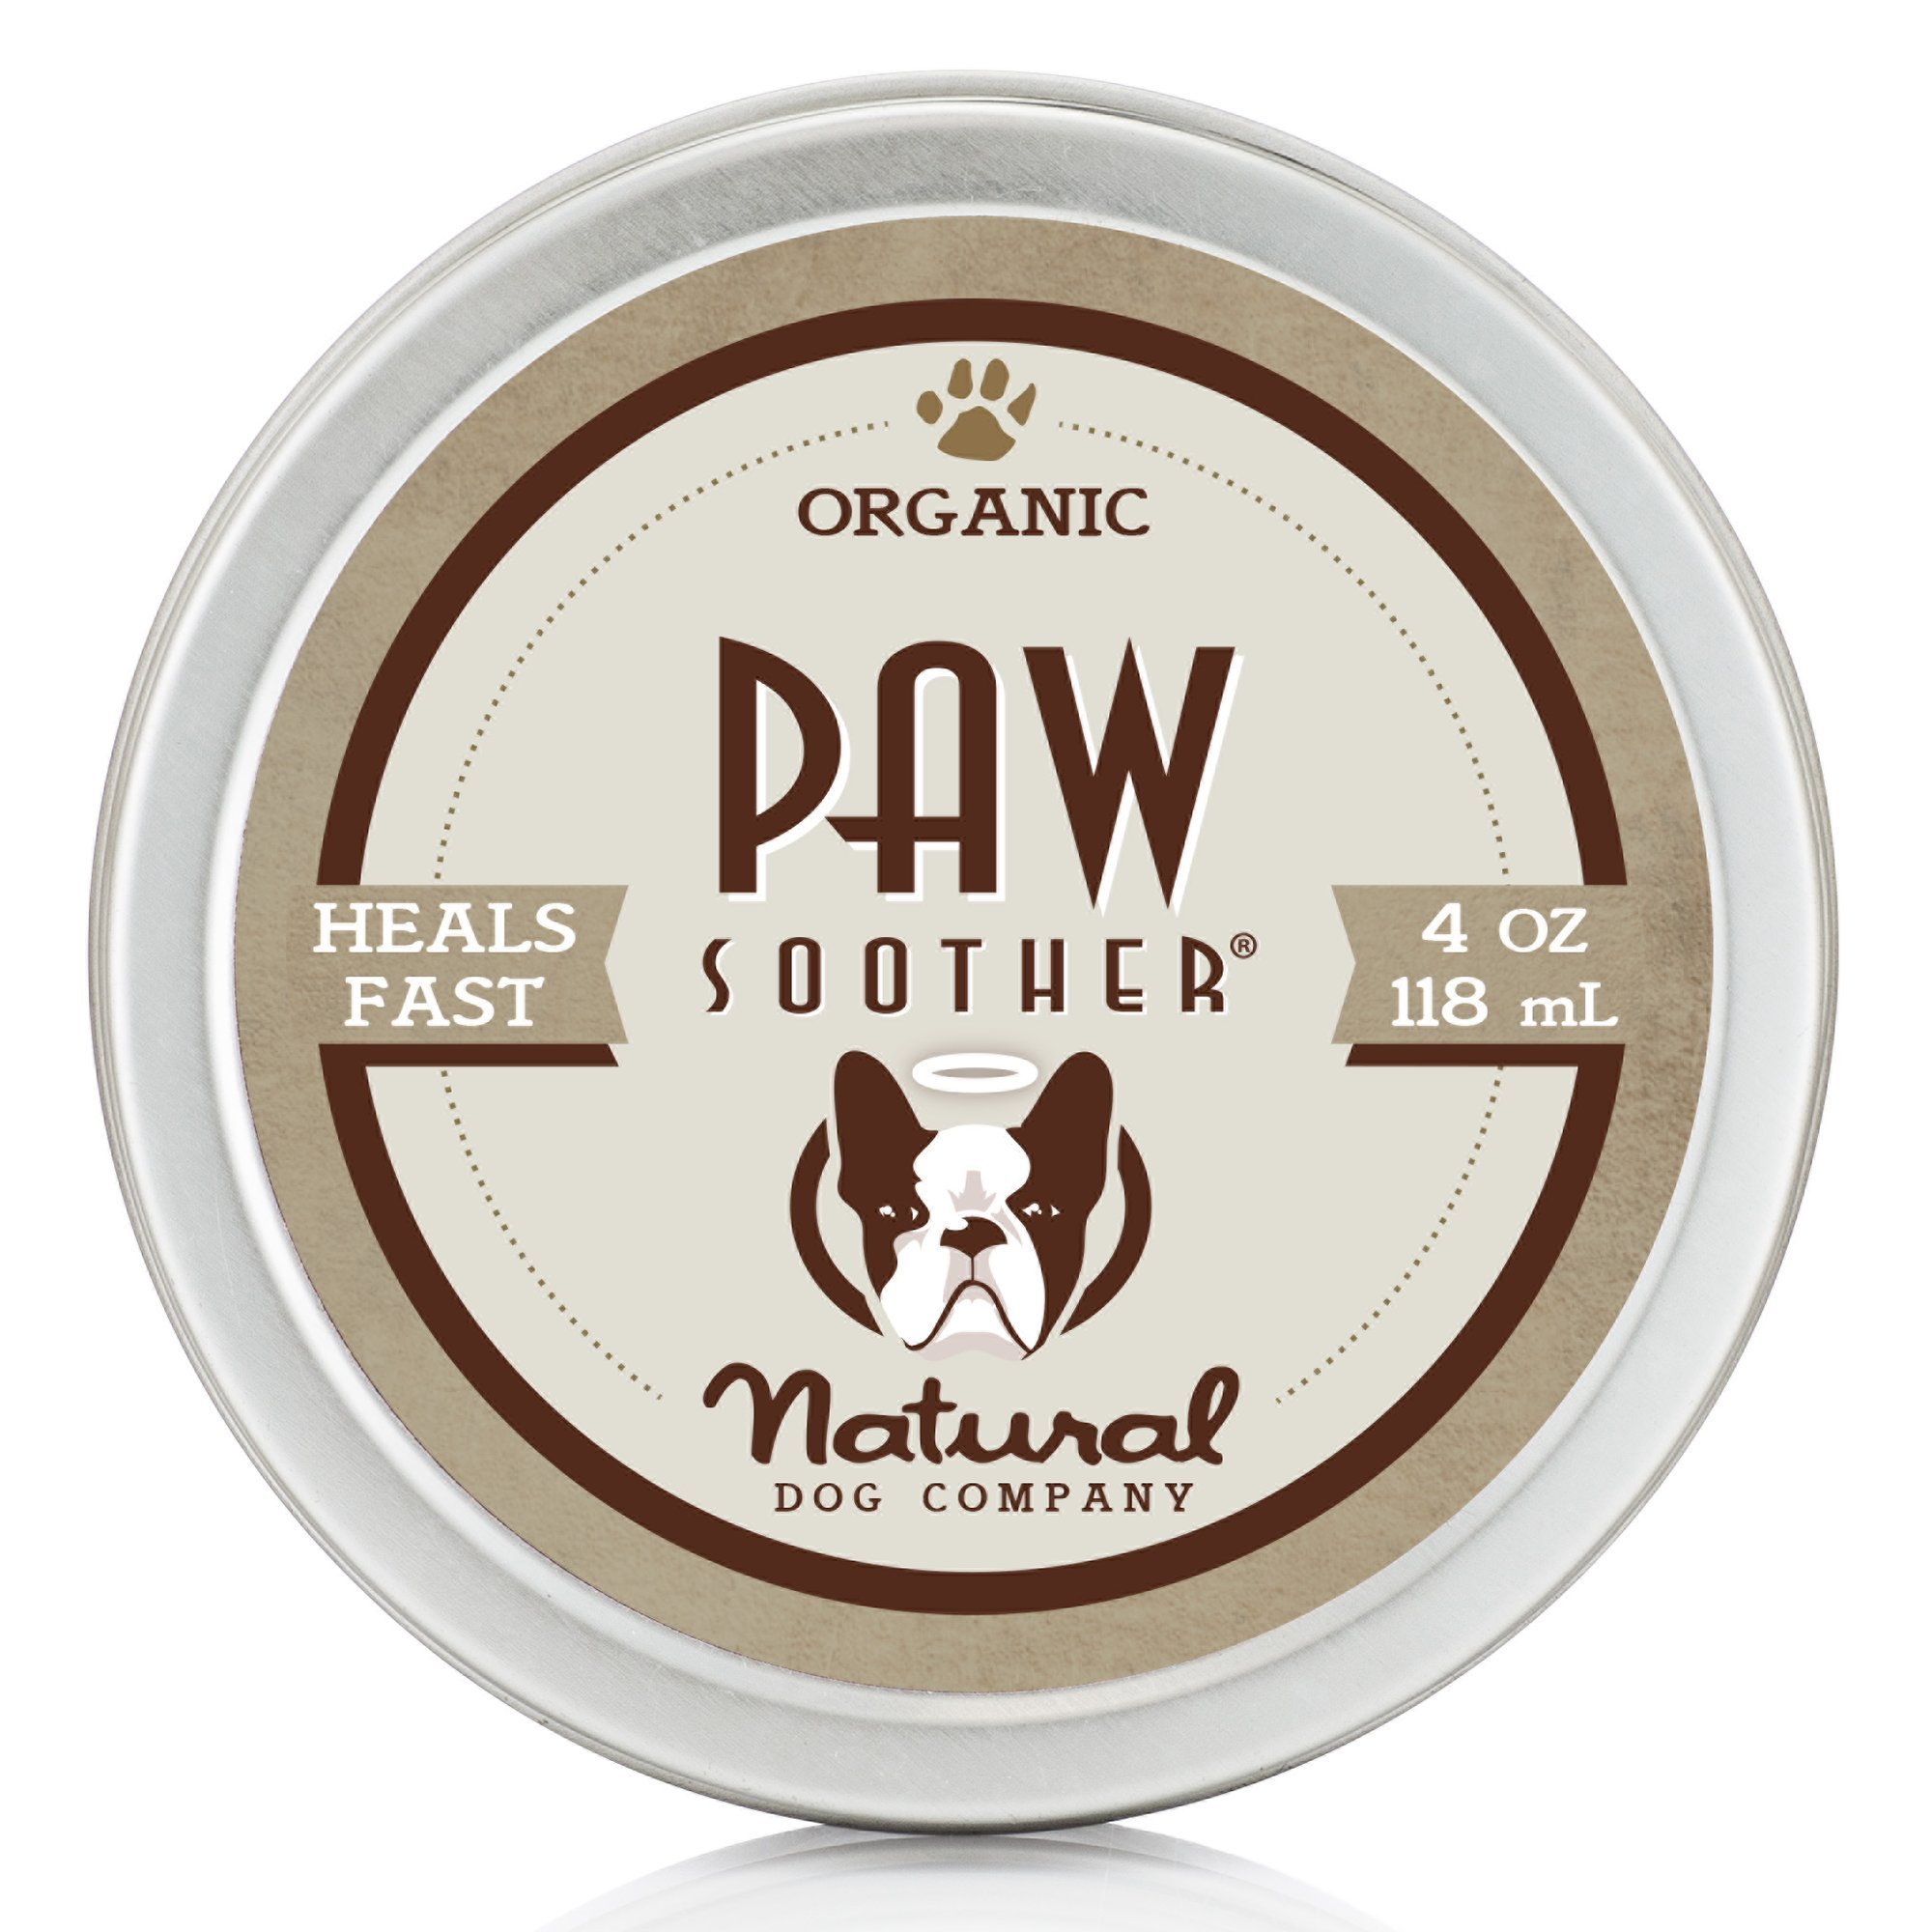 Natural Dog Company - Paw Soother | Heals Dry, Cracked, Irritated Dog Paw Pads | Organic, All-Natural Ingredients, Easy to Apply | 4 Oz Tin by Natural Dog Company